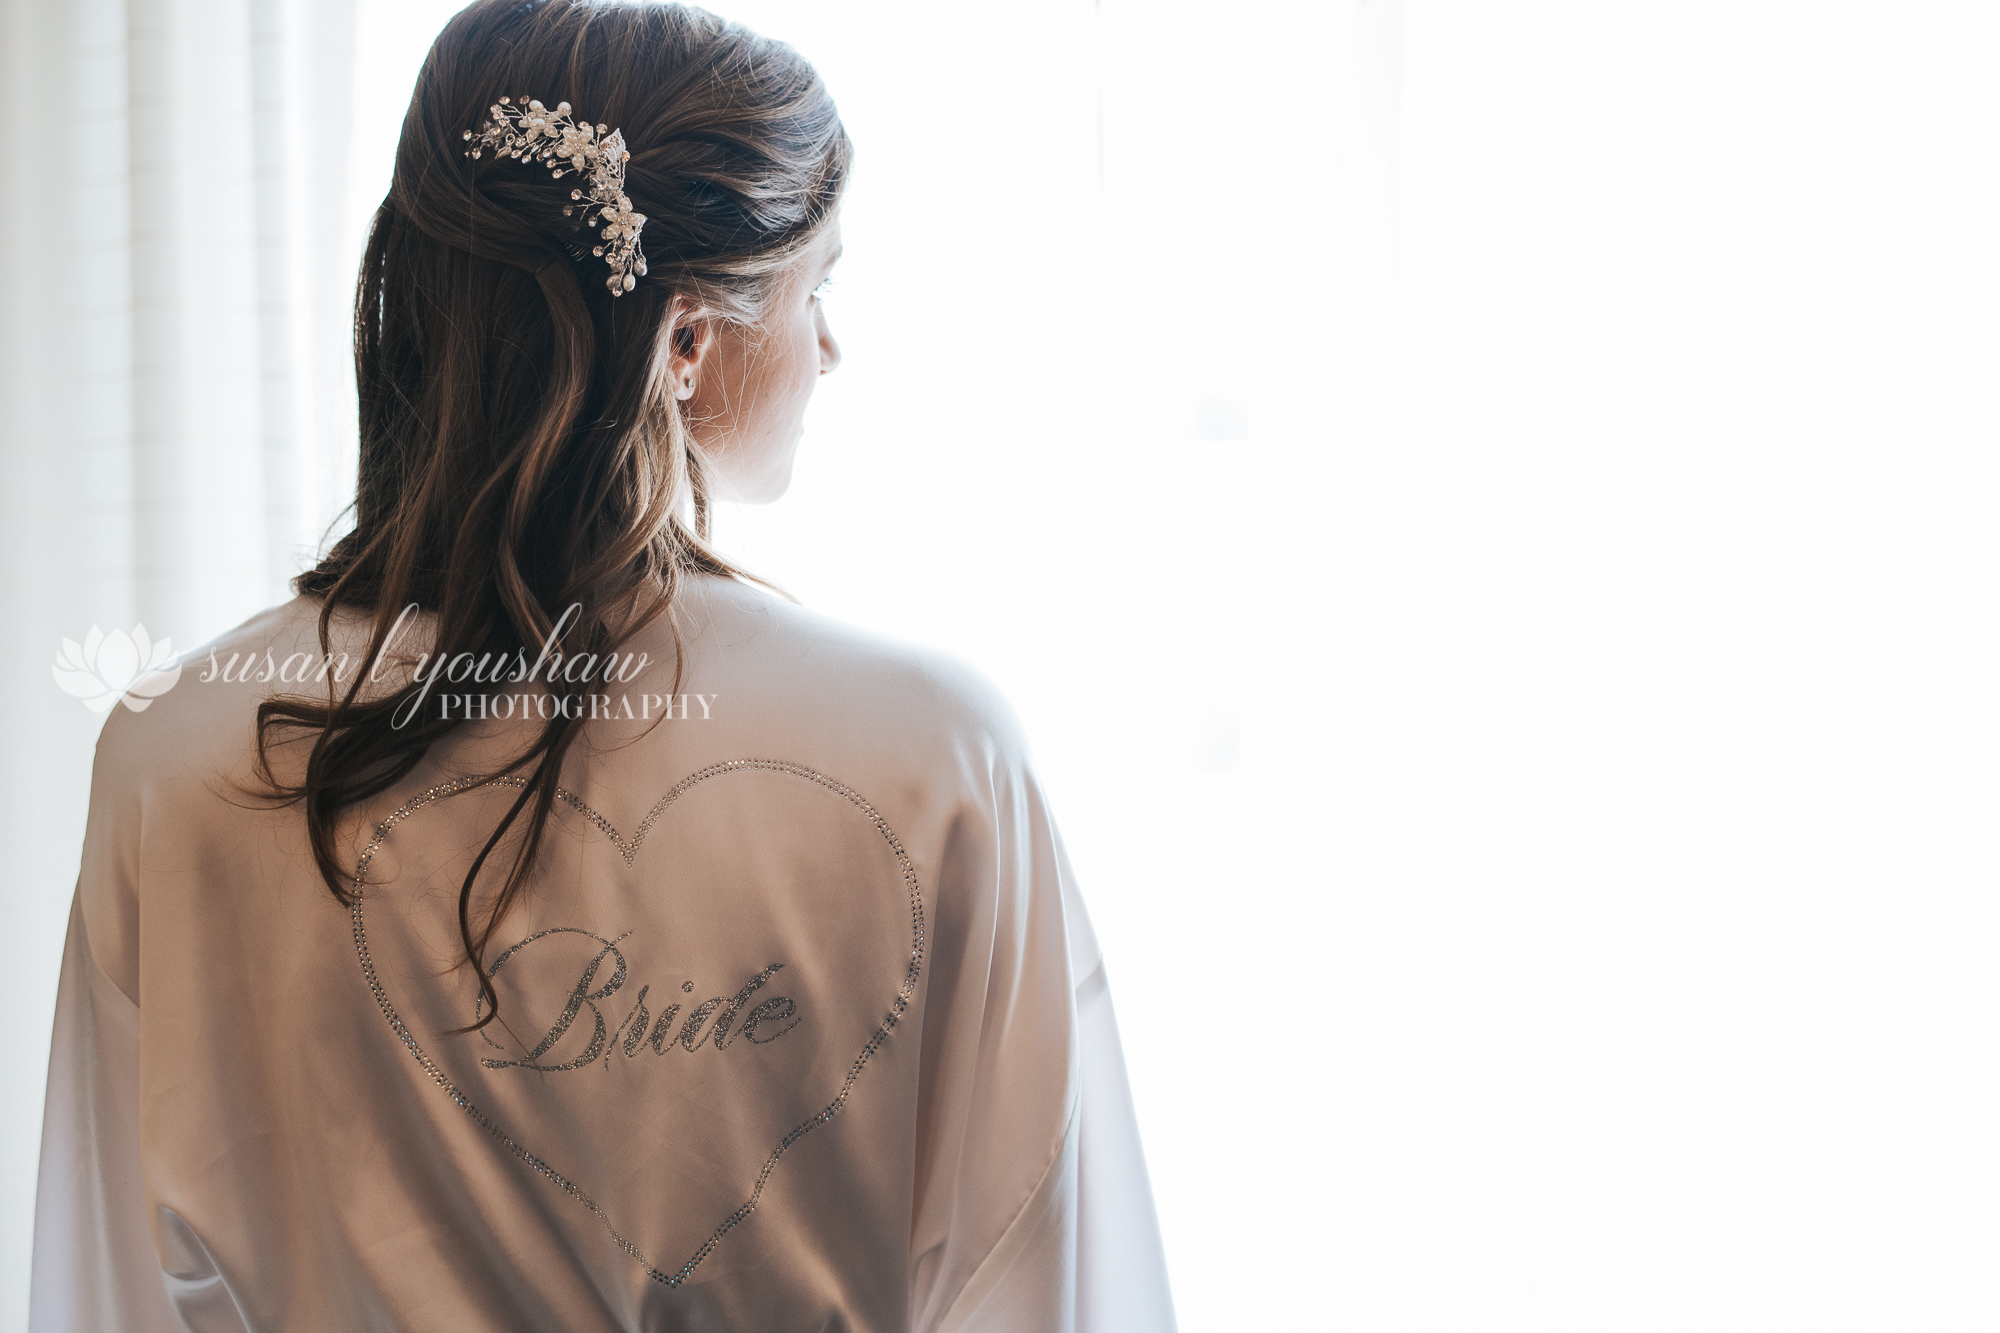 Chynna and John Wedding 05-18-2019 SLY Photography-8.jpg